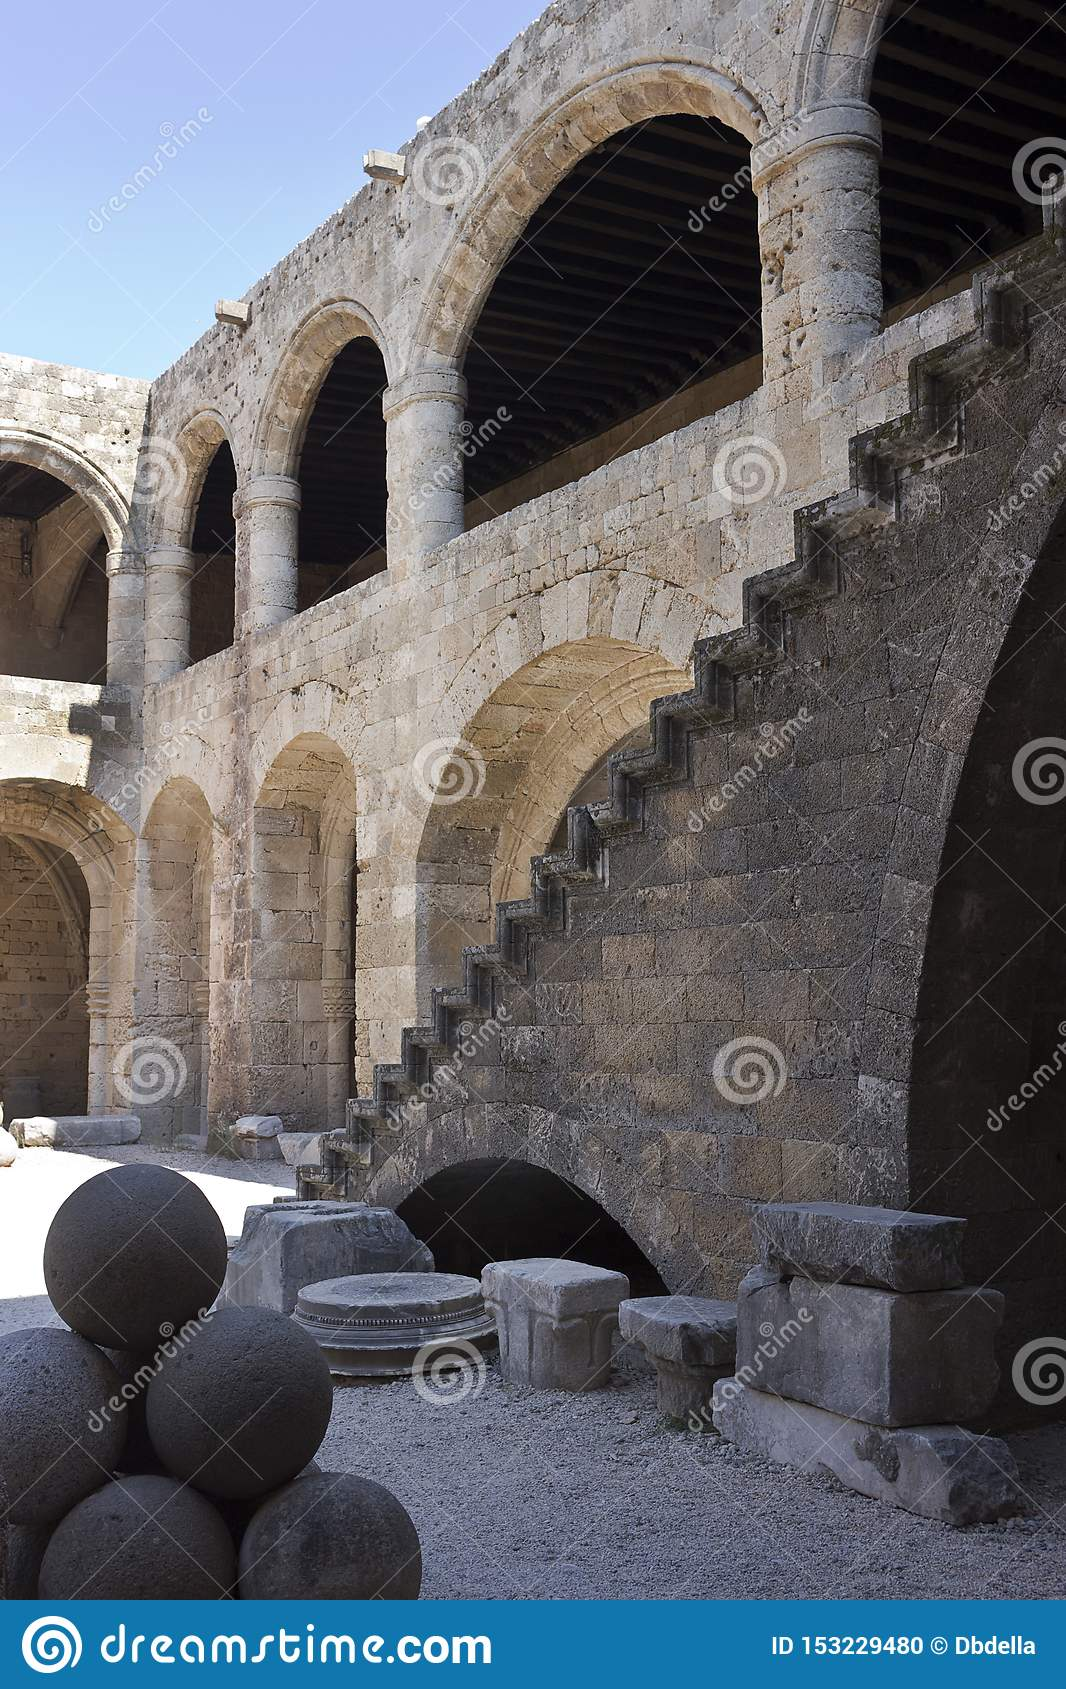 Rhodes Old City - Hospital of the Knights, the main courtyard. The outside stairway leads to the upper floor. Archaeological muse